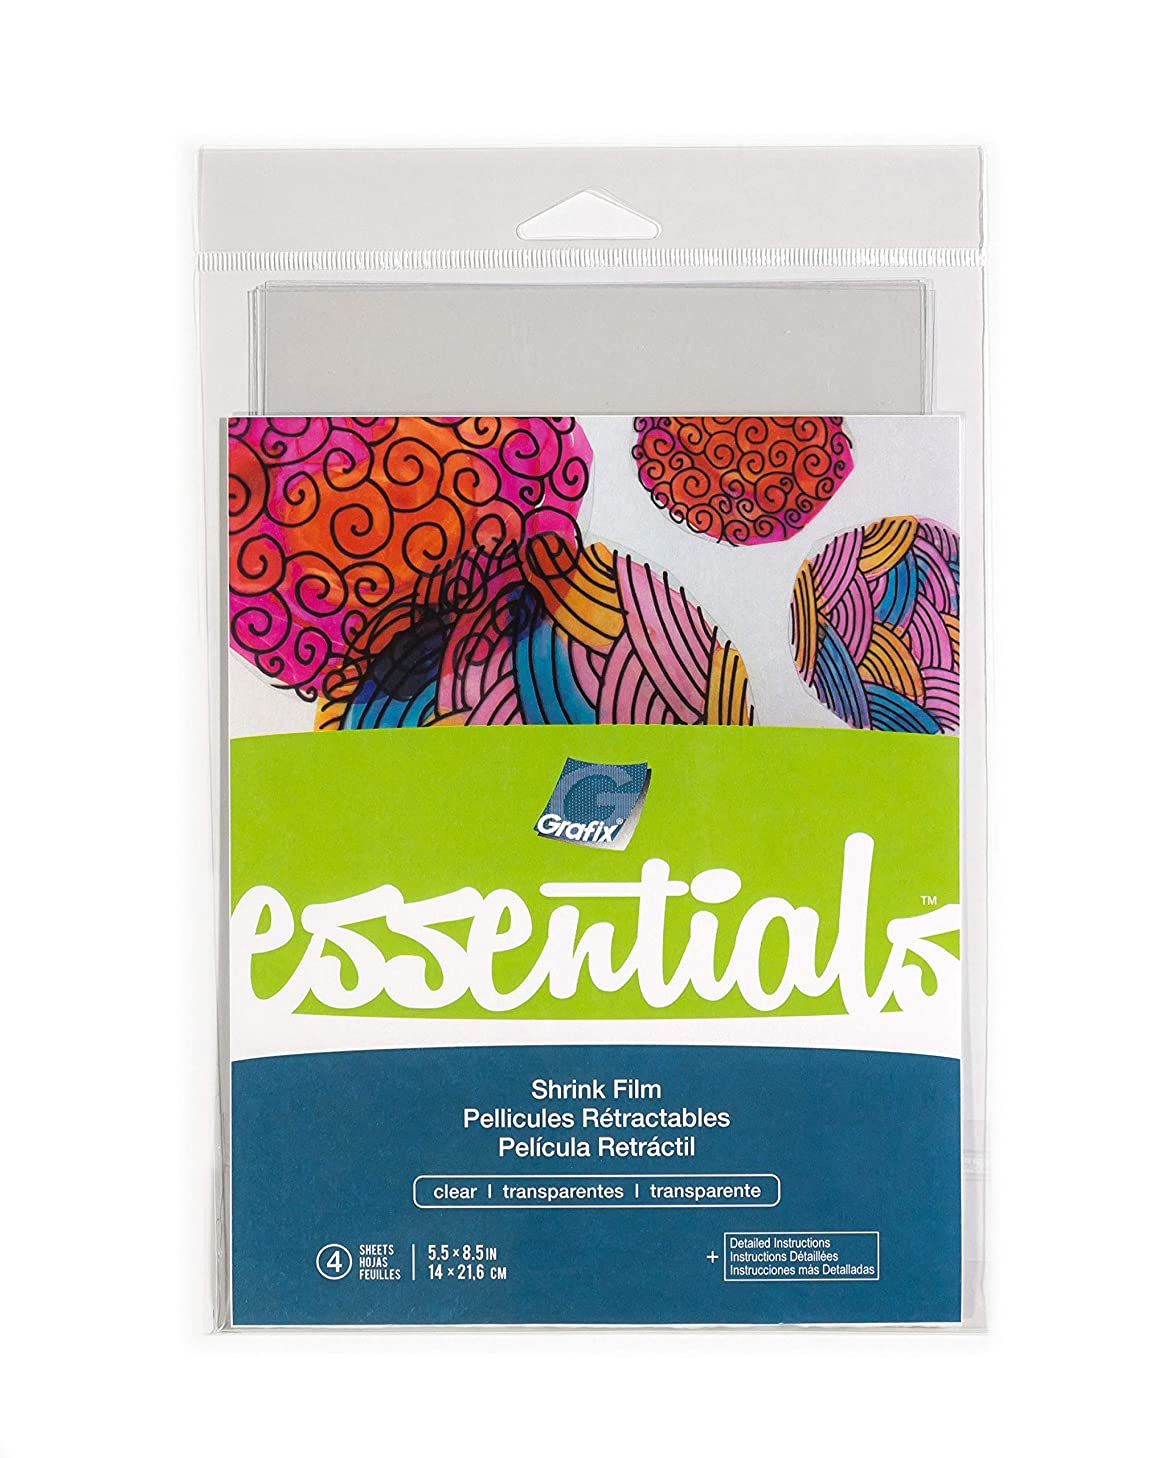 """Grafix Essentials Clear Shrink Film for Creative Art, Crafts, and DIY Embellishments - 5.5"""" X 8.5"""", Pack of 4"""